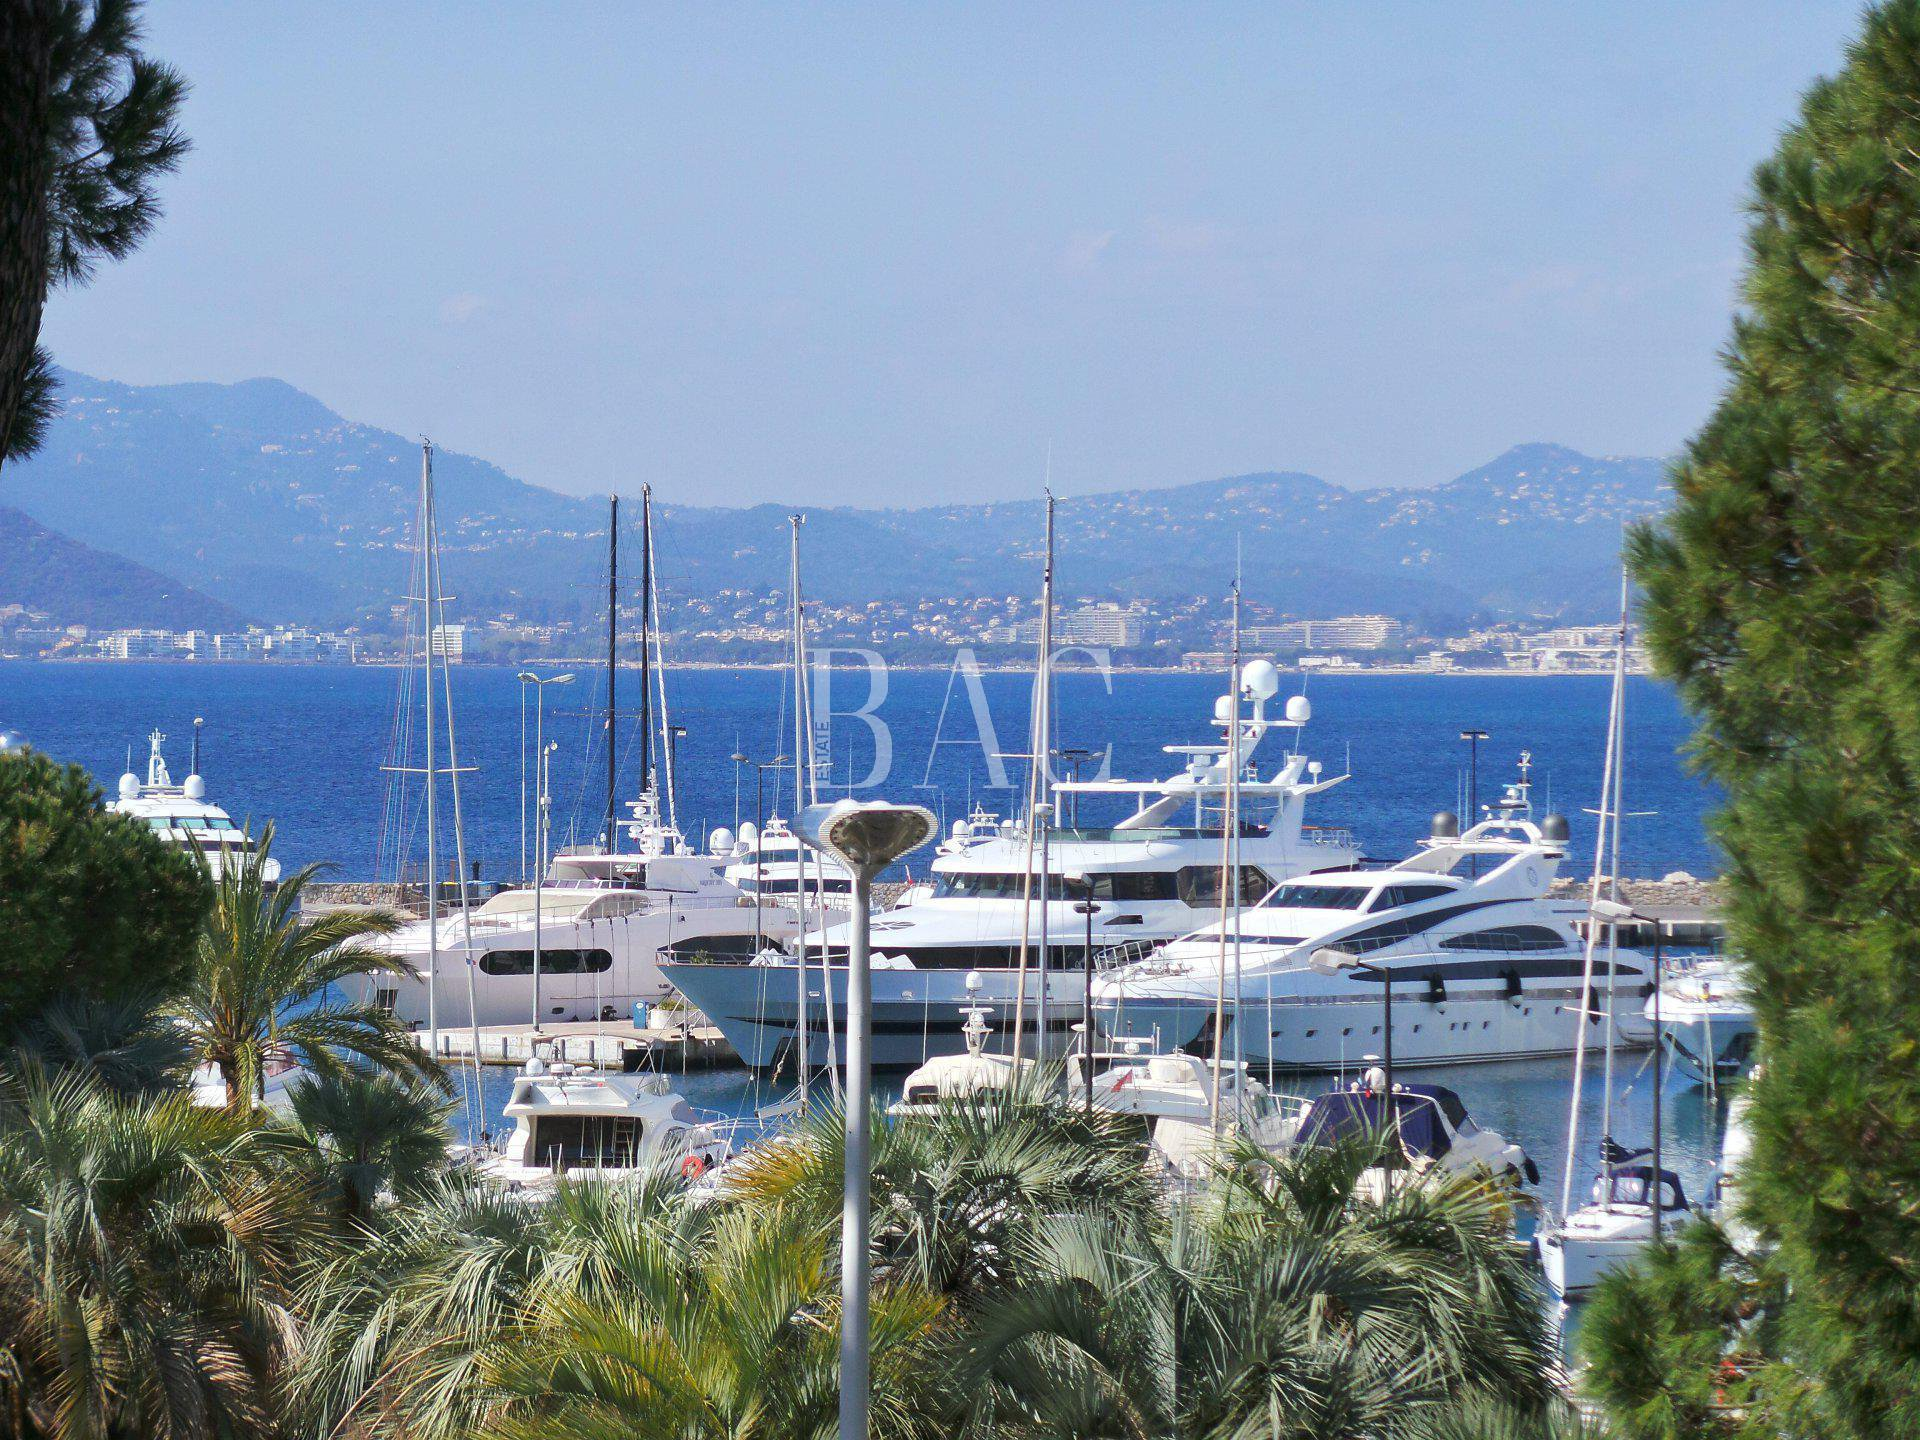 Cannes, Boulevard de la Croisette in a sought after residence and only 1700 meters from the Palais du festival des films